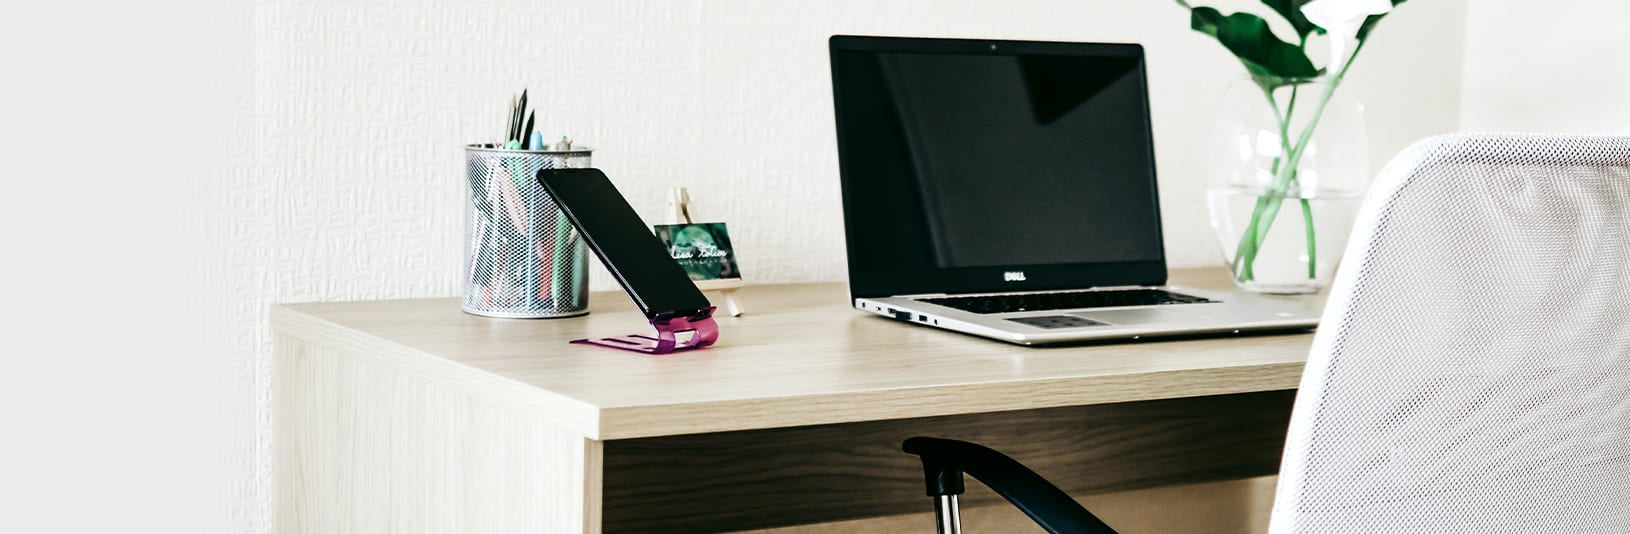 A desk setup in someone's home office